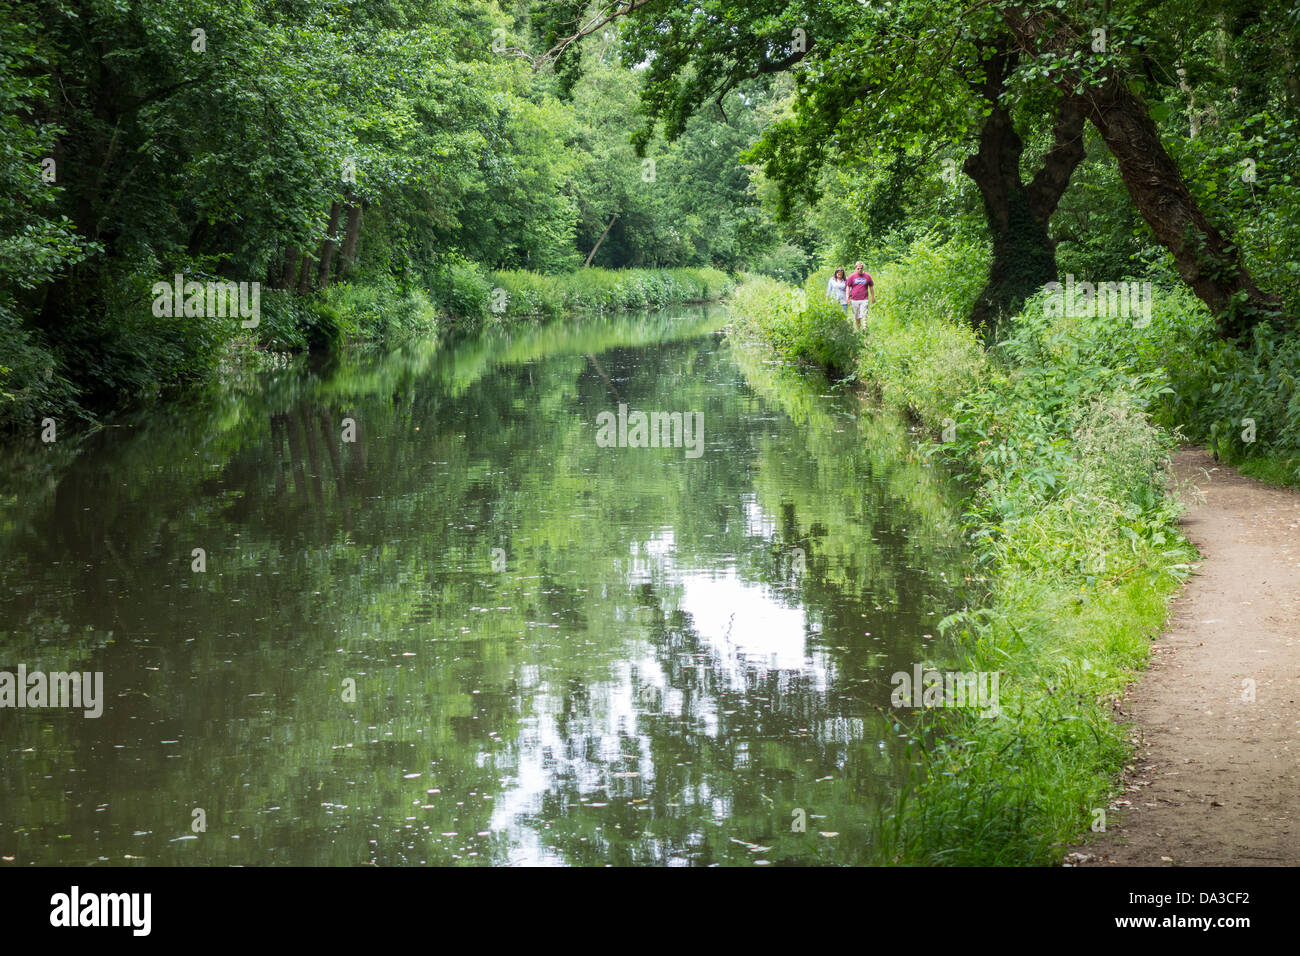 Towpath Walkers on the Wey and Arun Canal at Wisley - Stock Image